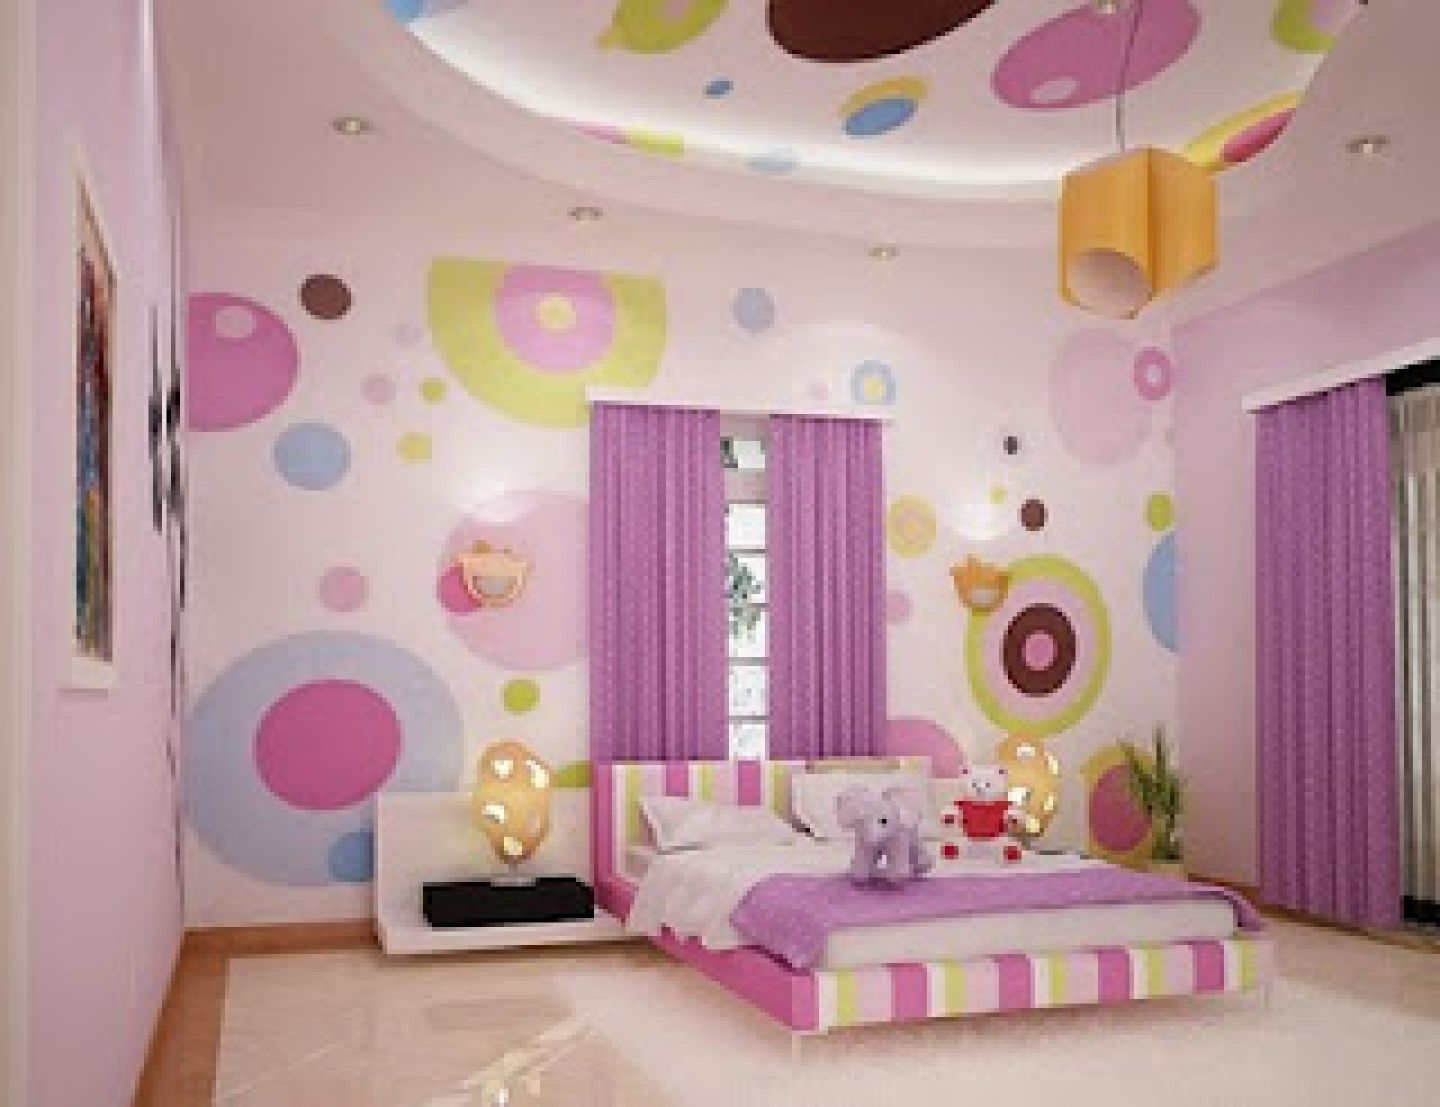 Superb Pink Themed DIY Kids Room Design With Modern Line Pattern Bed Frame That  Have Doll Toys